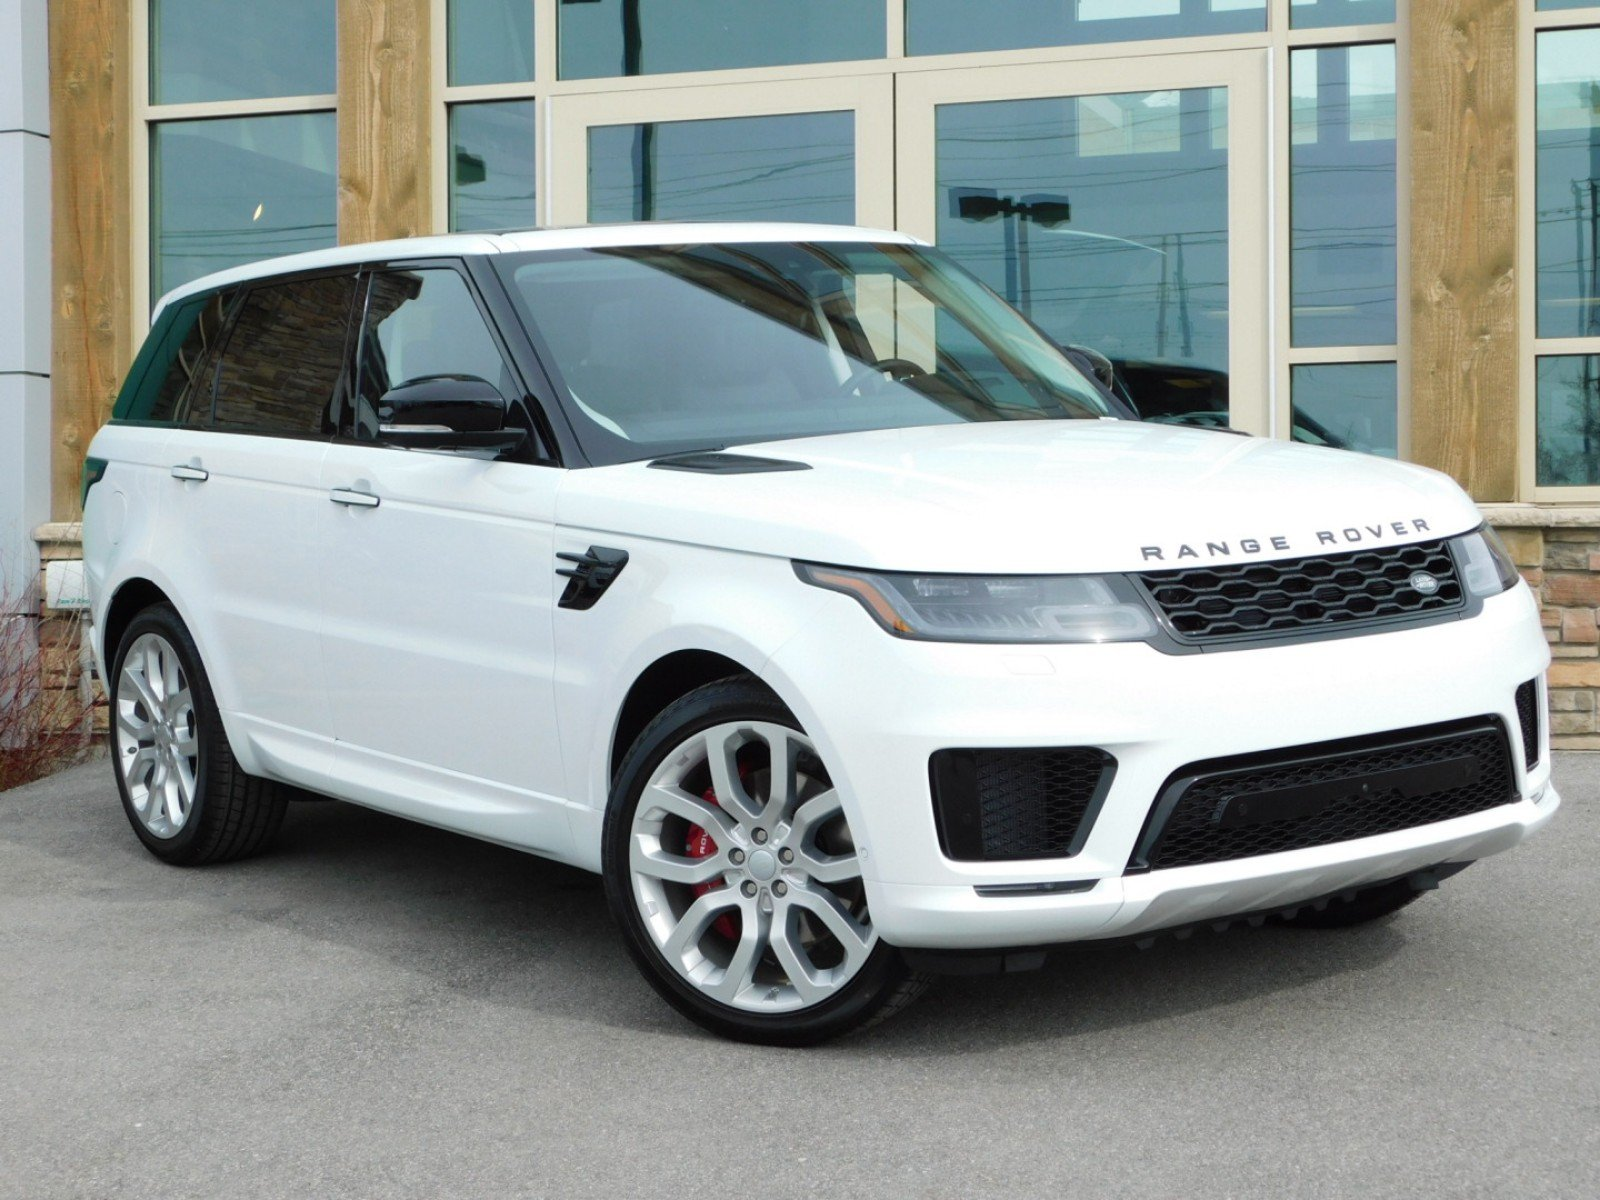 Land Rover Range Rover >> New Land Rover Range Rover Sport Hse Dynamic With Navigation 4wd